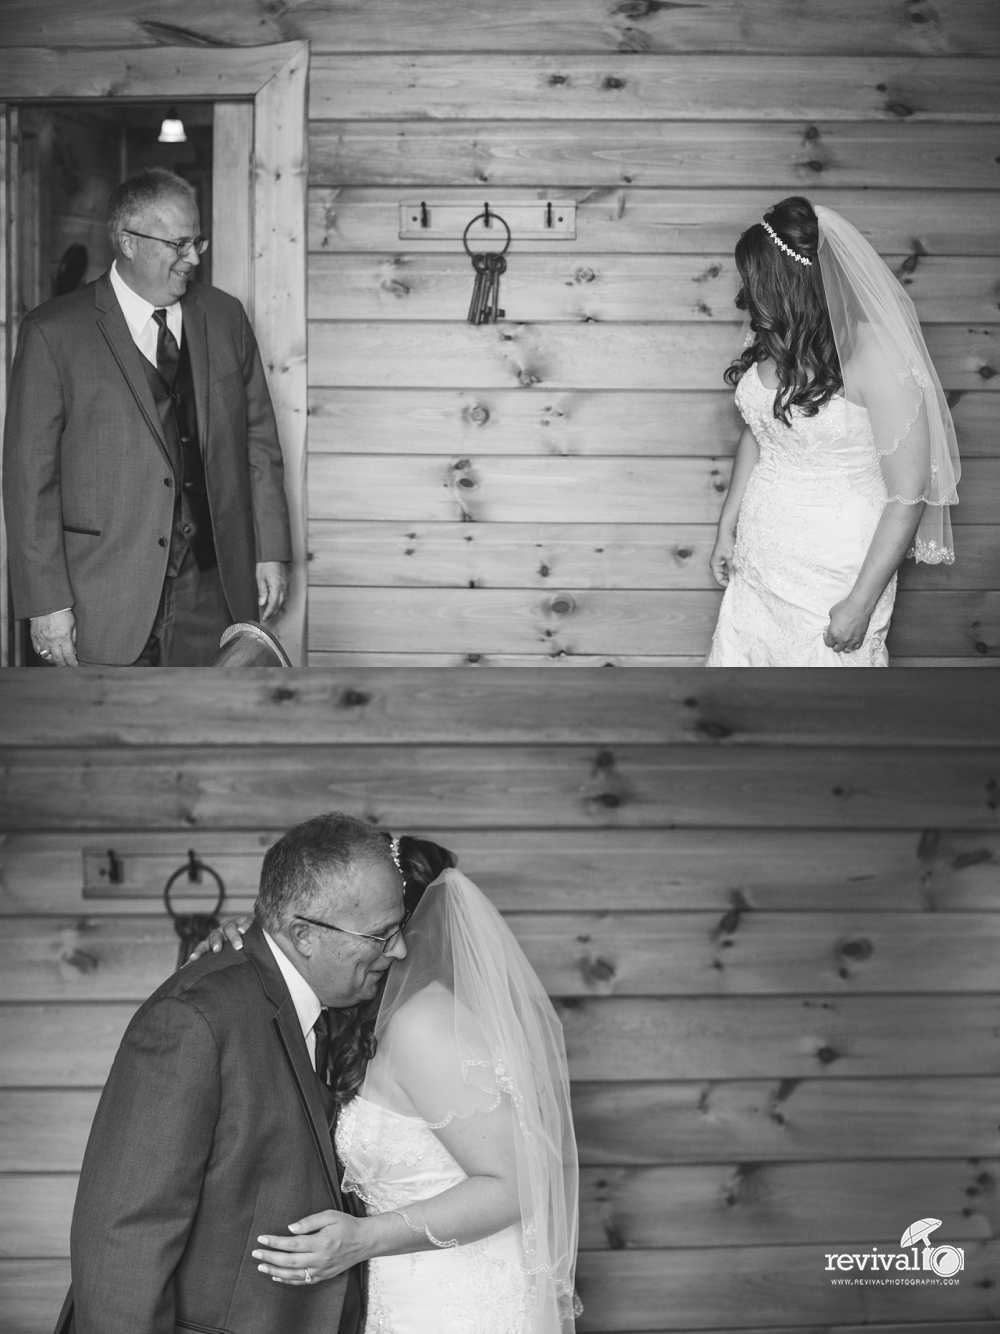 Katie + Kyle: A Rustic Fall Wedding at Leatherwood Mountain Resort by Revival Photography NC Wedding Photographers www.revivalphotography.com